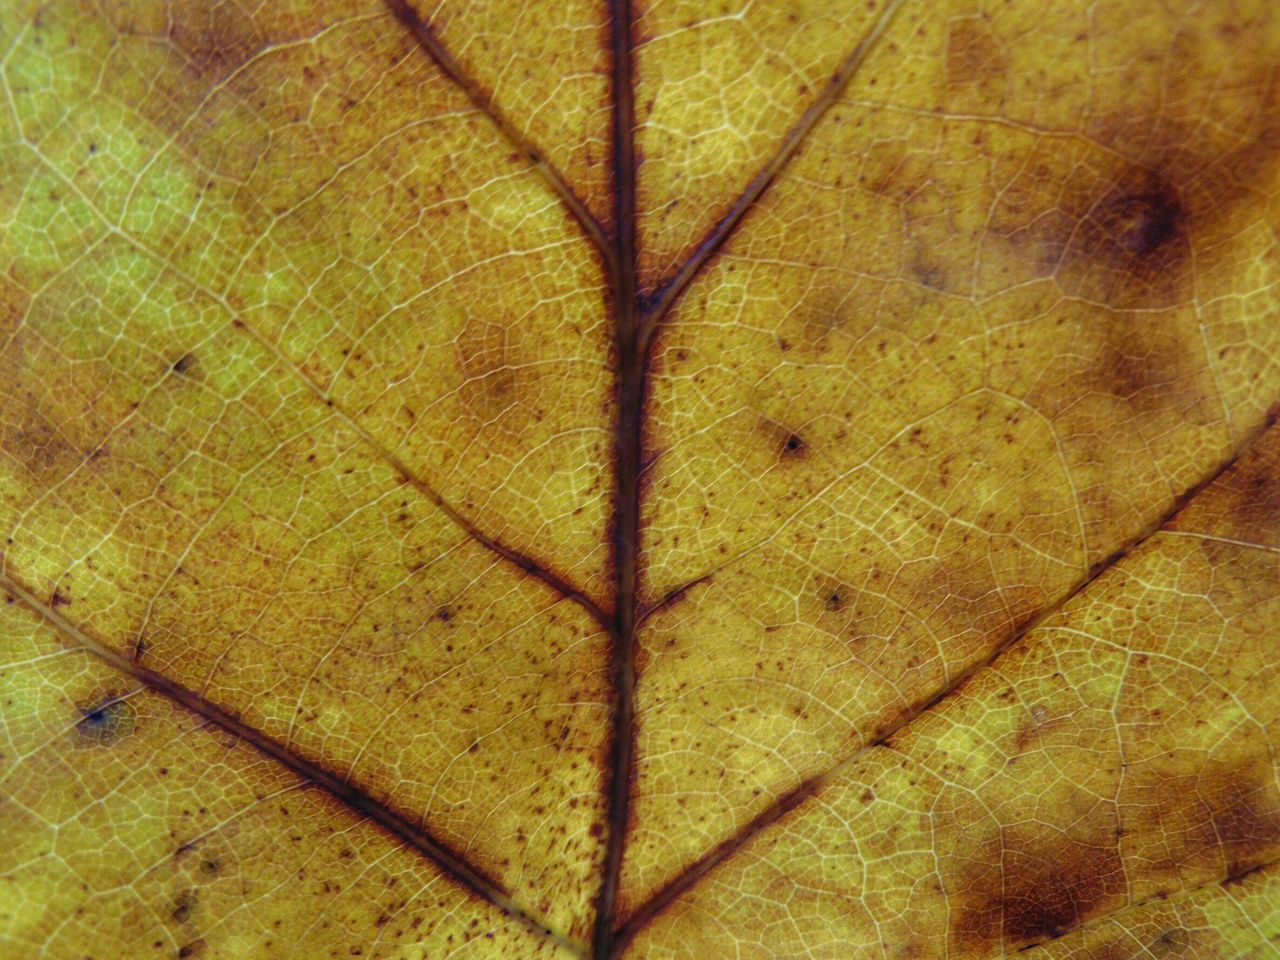 leaf, full frame, backgrounds, textured, pattern, nature, close-up, no people, tree, day, branch, science, outdoors, fragility